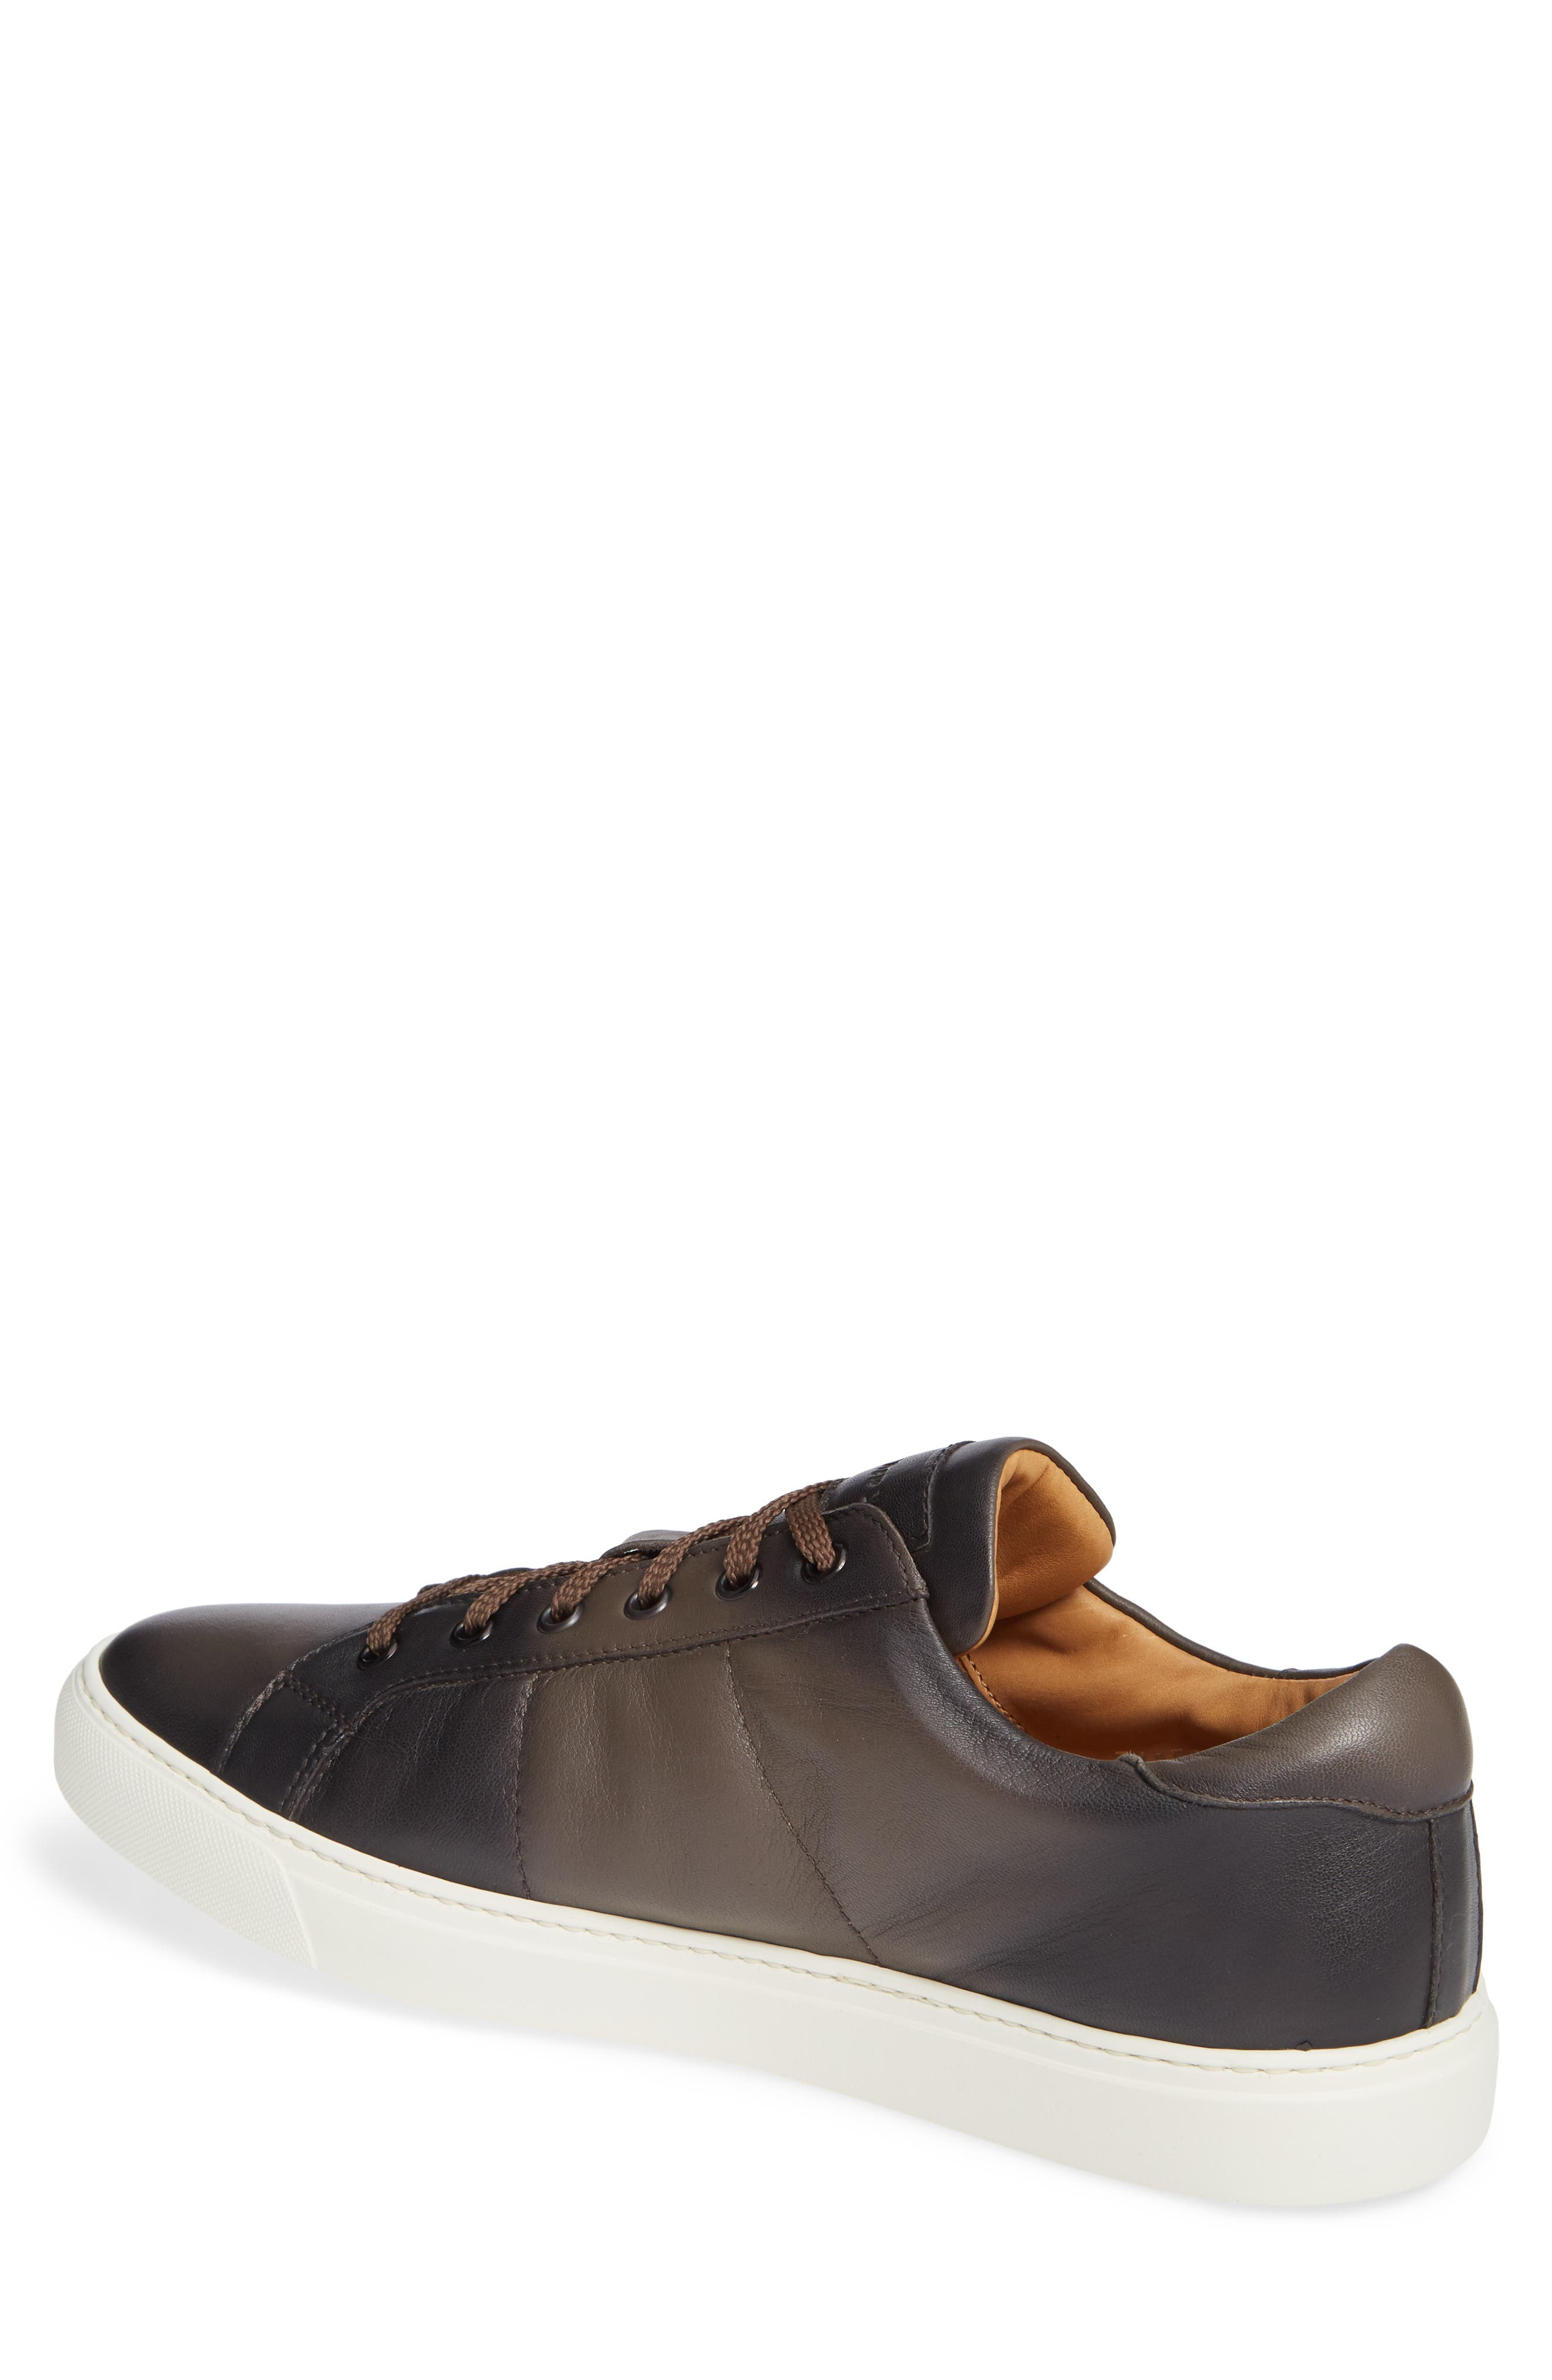 Colton Sneaker,                             Alternate thumbnail 2, color,                             TAUPE GREY LEATHER